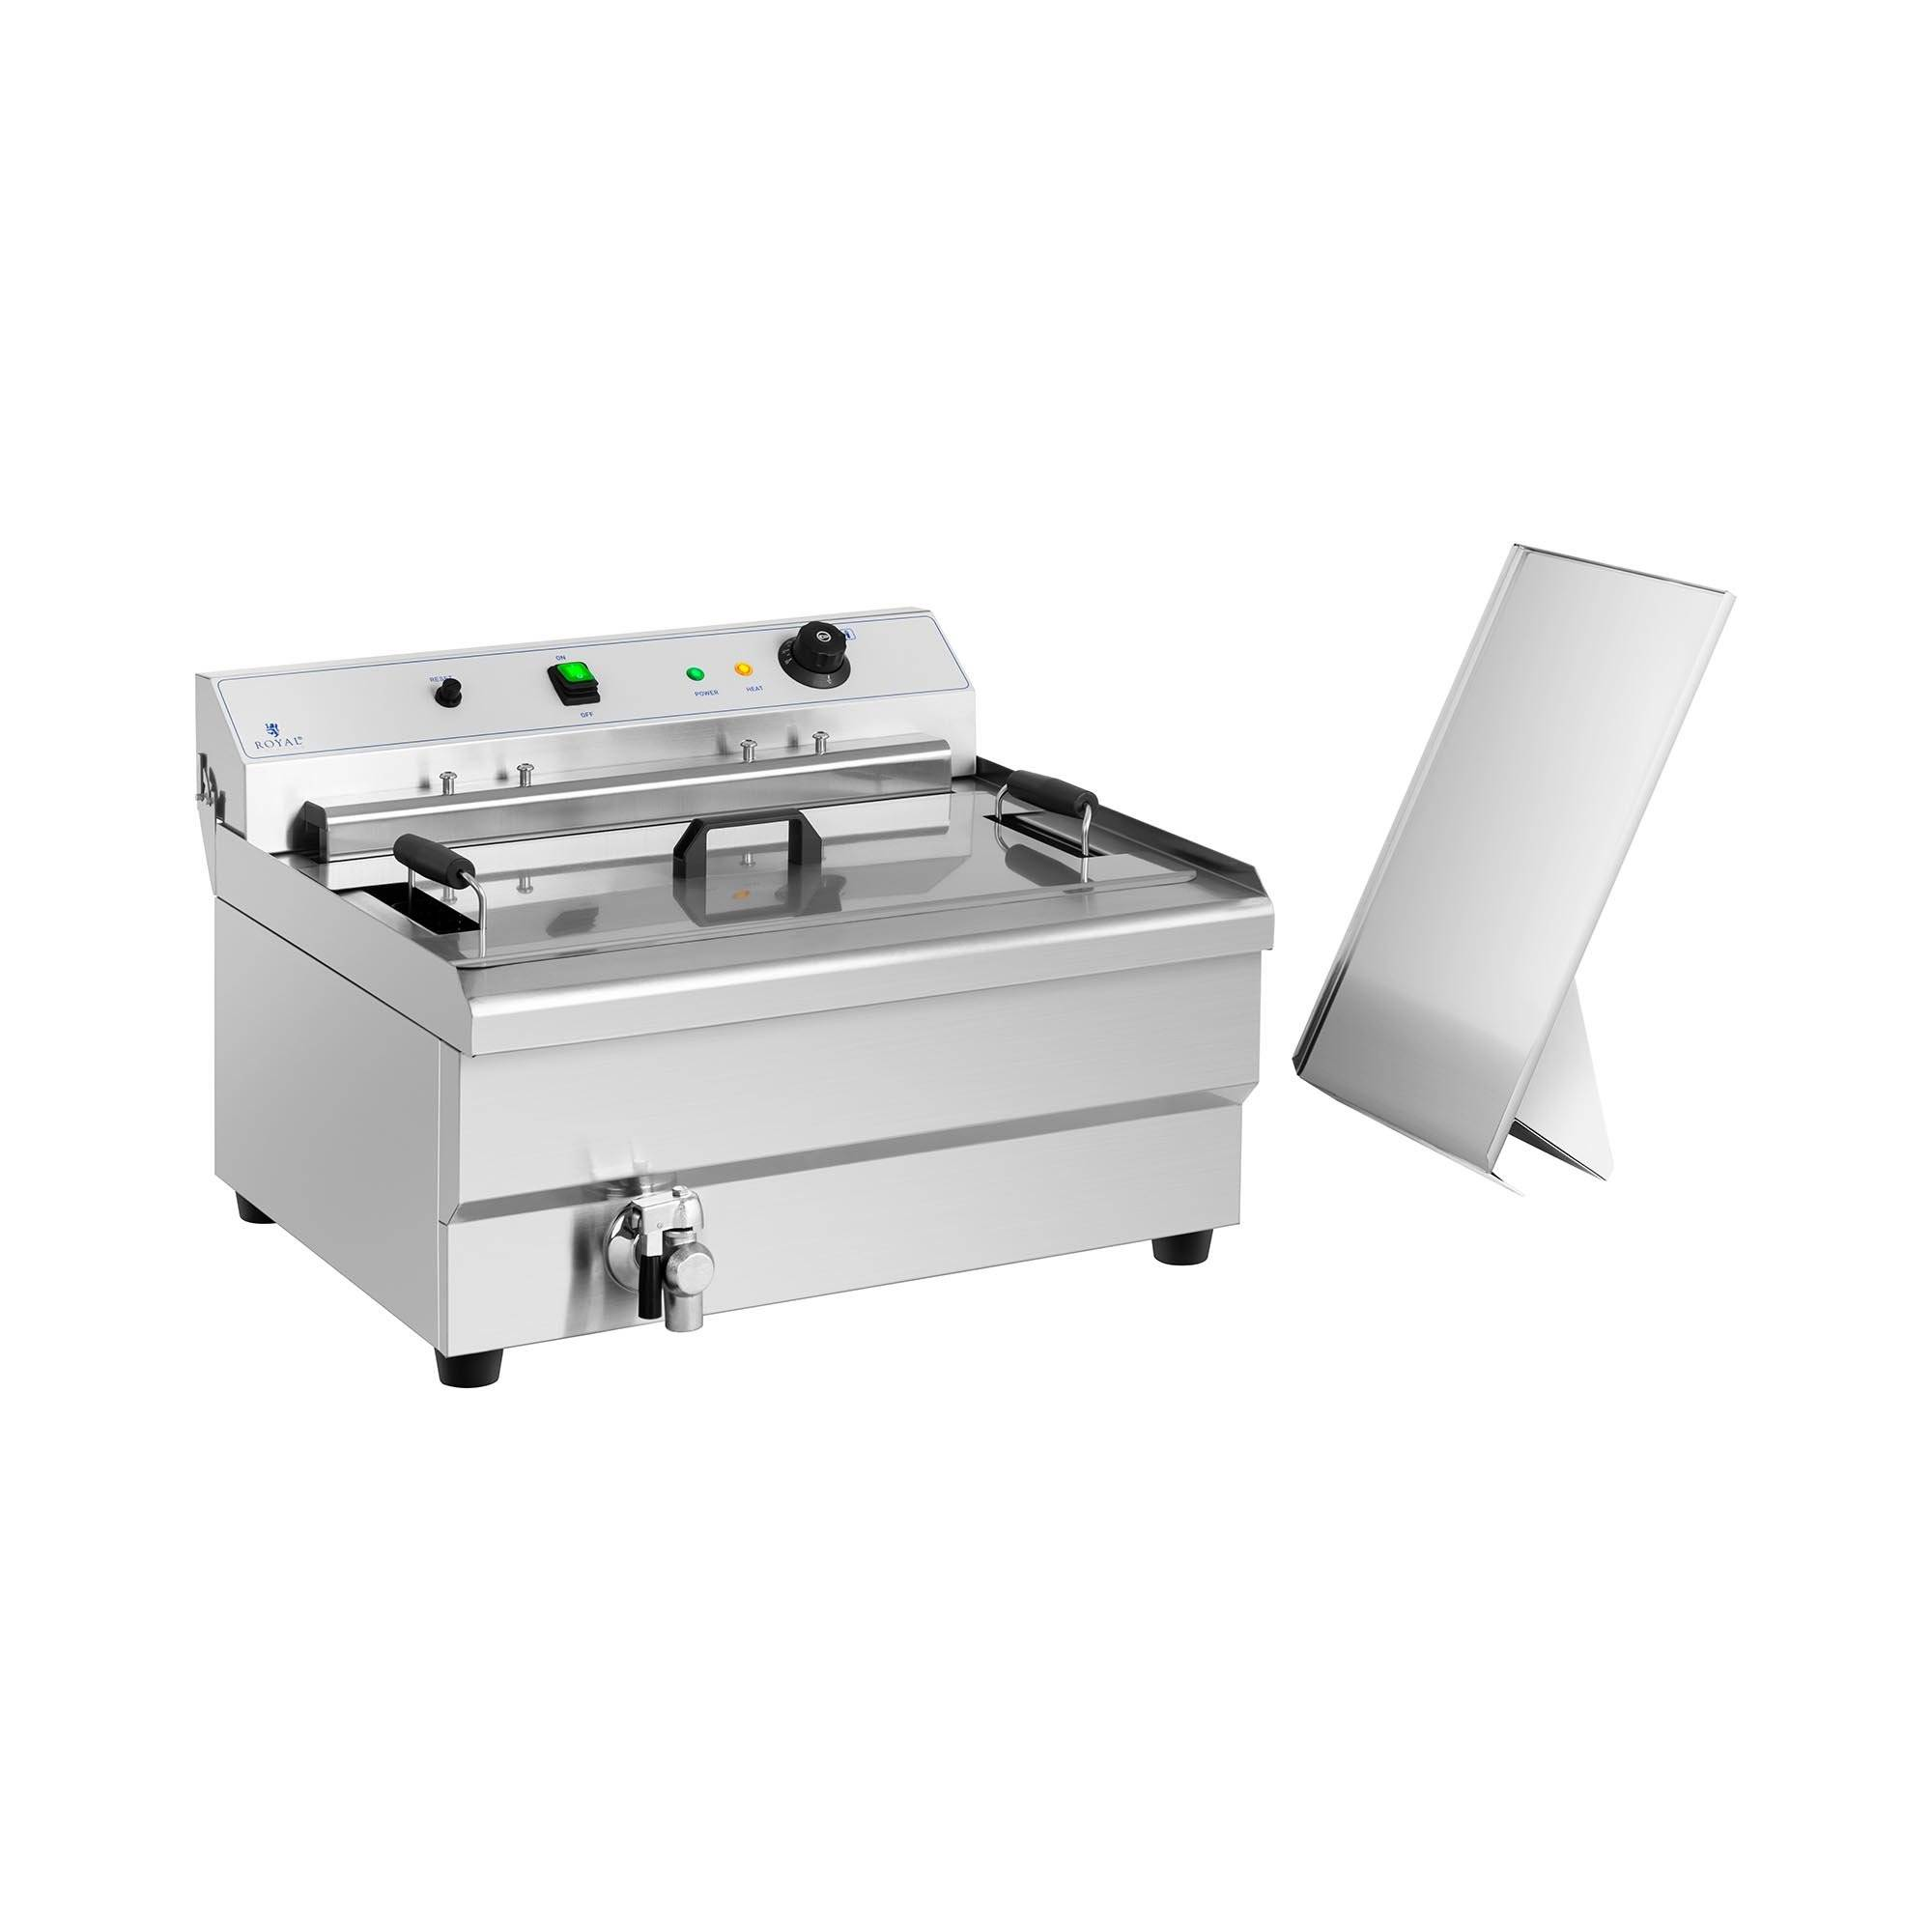 Royal Catering Donut Fryer - 30 litres - 9,000 W - cold zone RCBG-30STHB